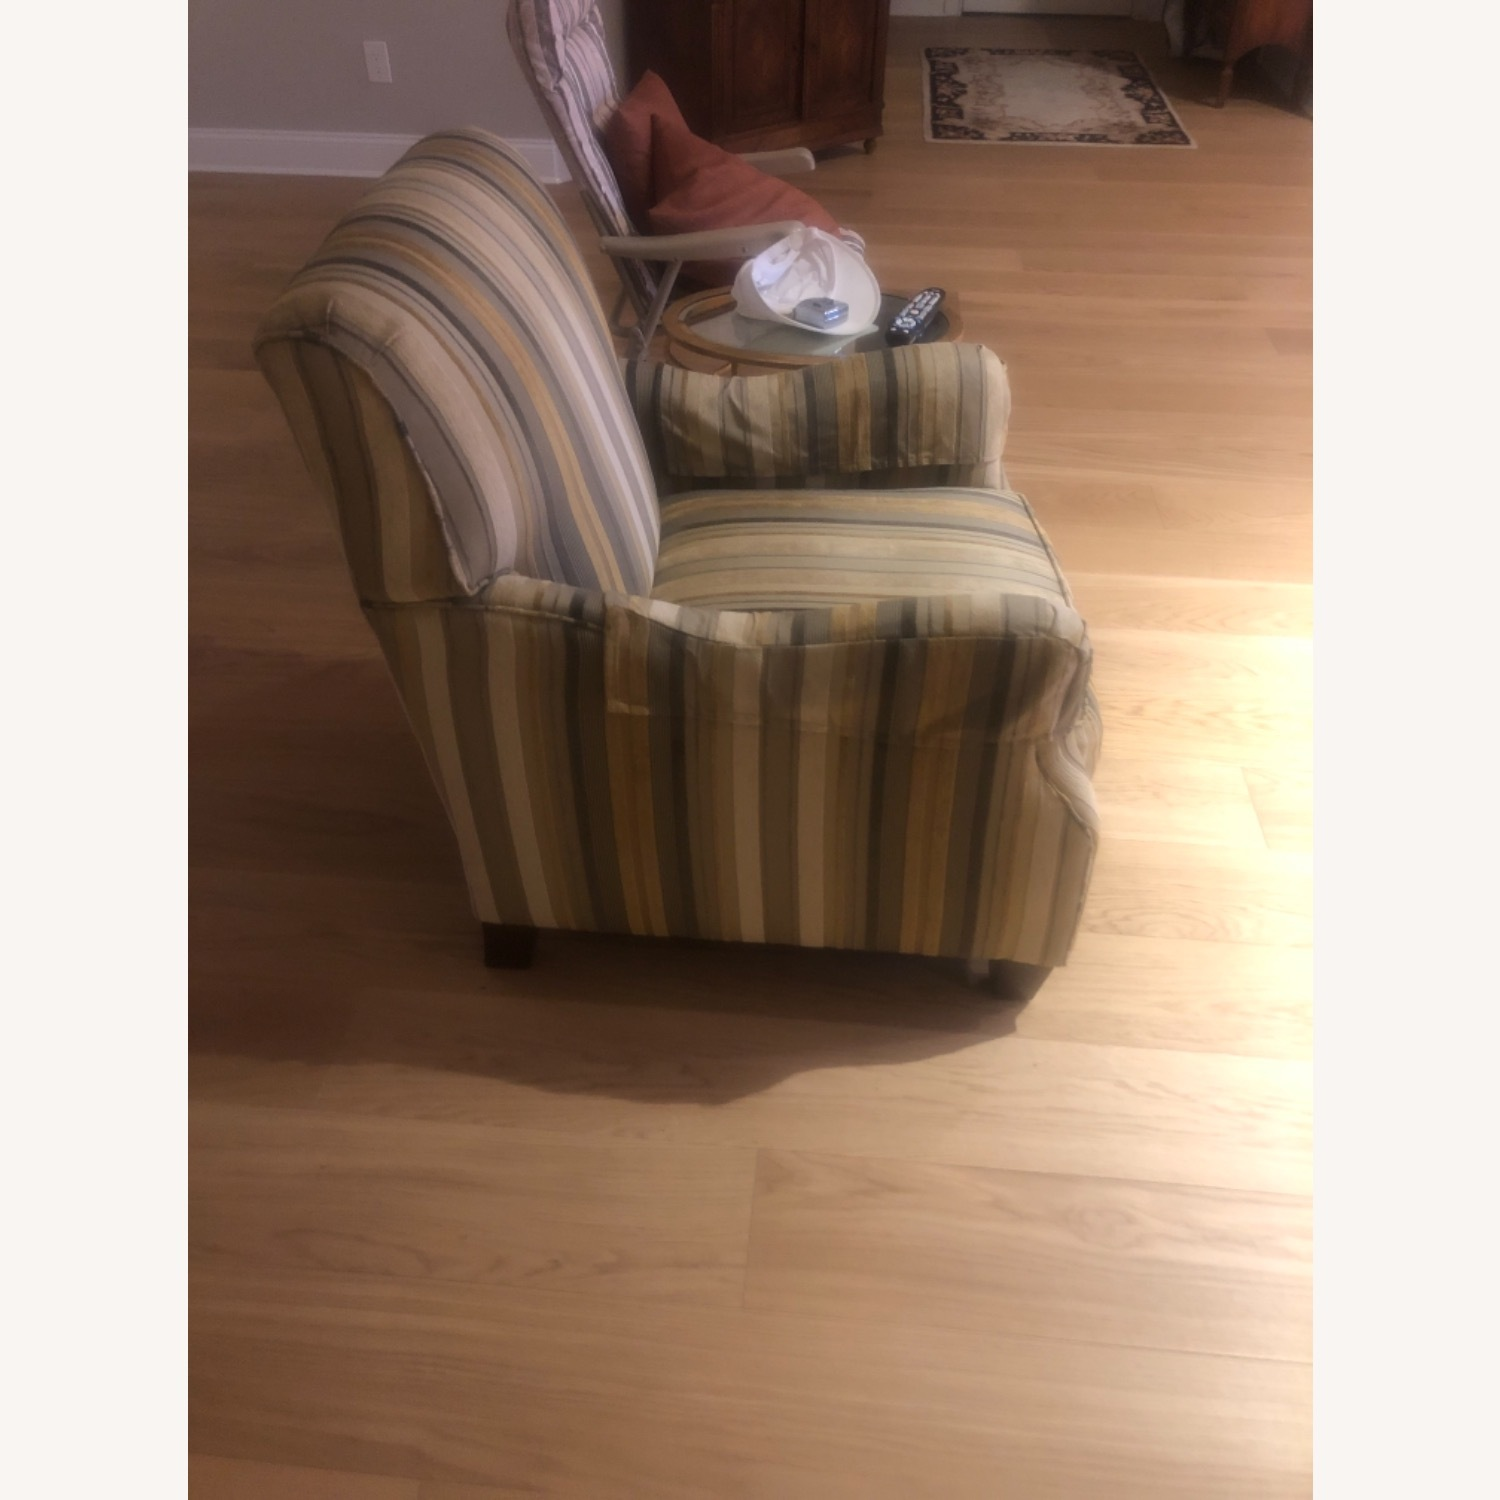 Dennis LennerVery Cushioned Comfortable Arm Chair - image-3